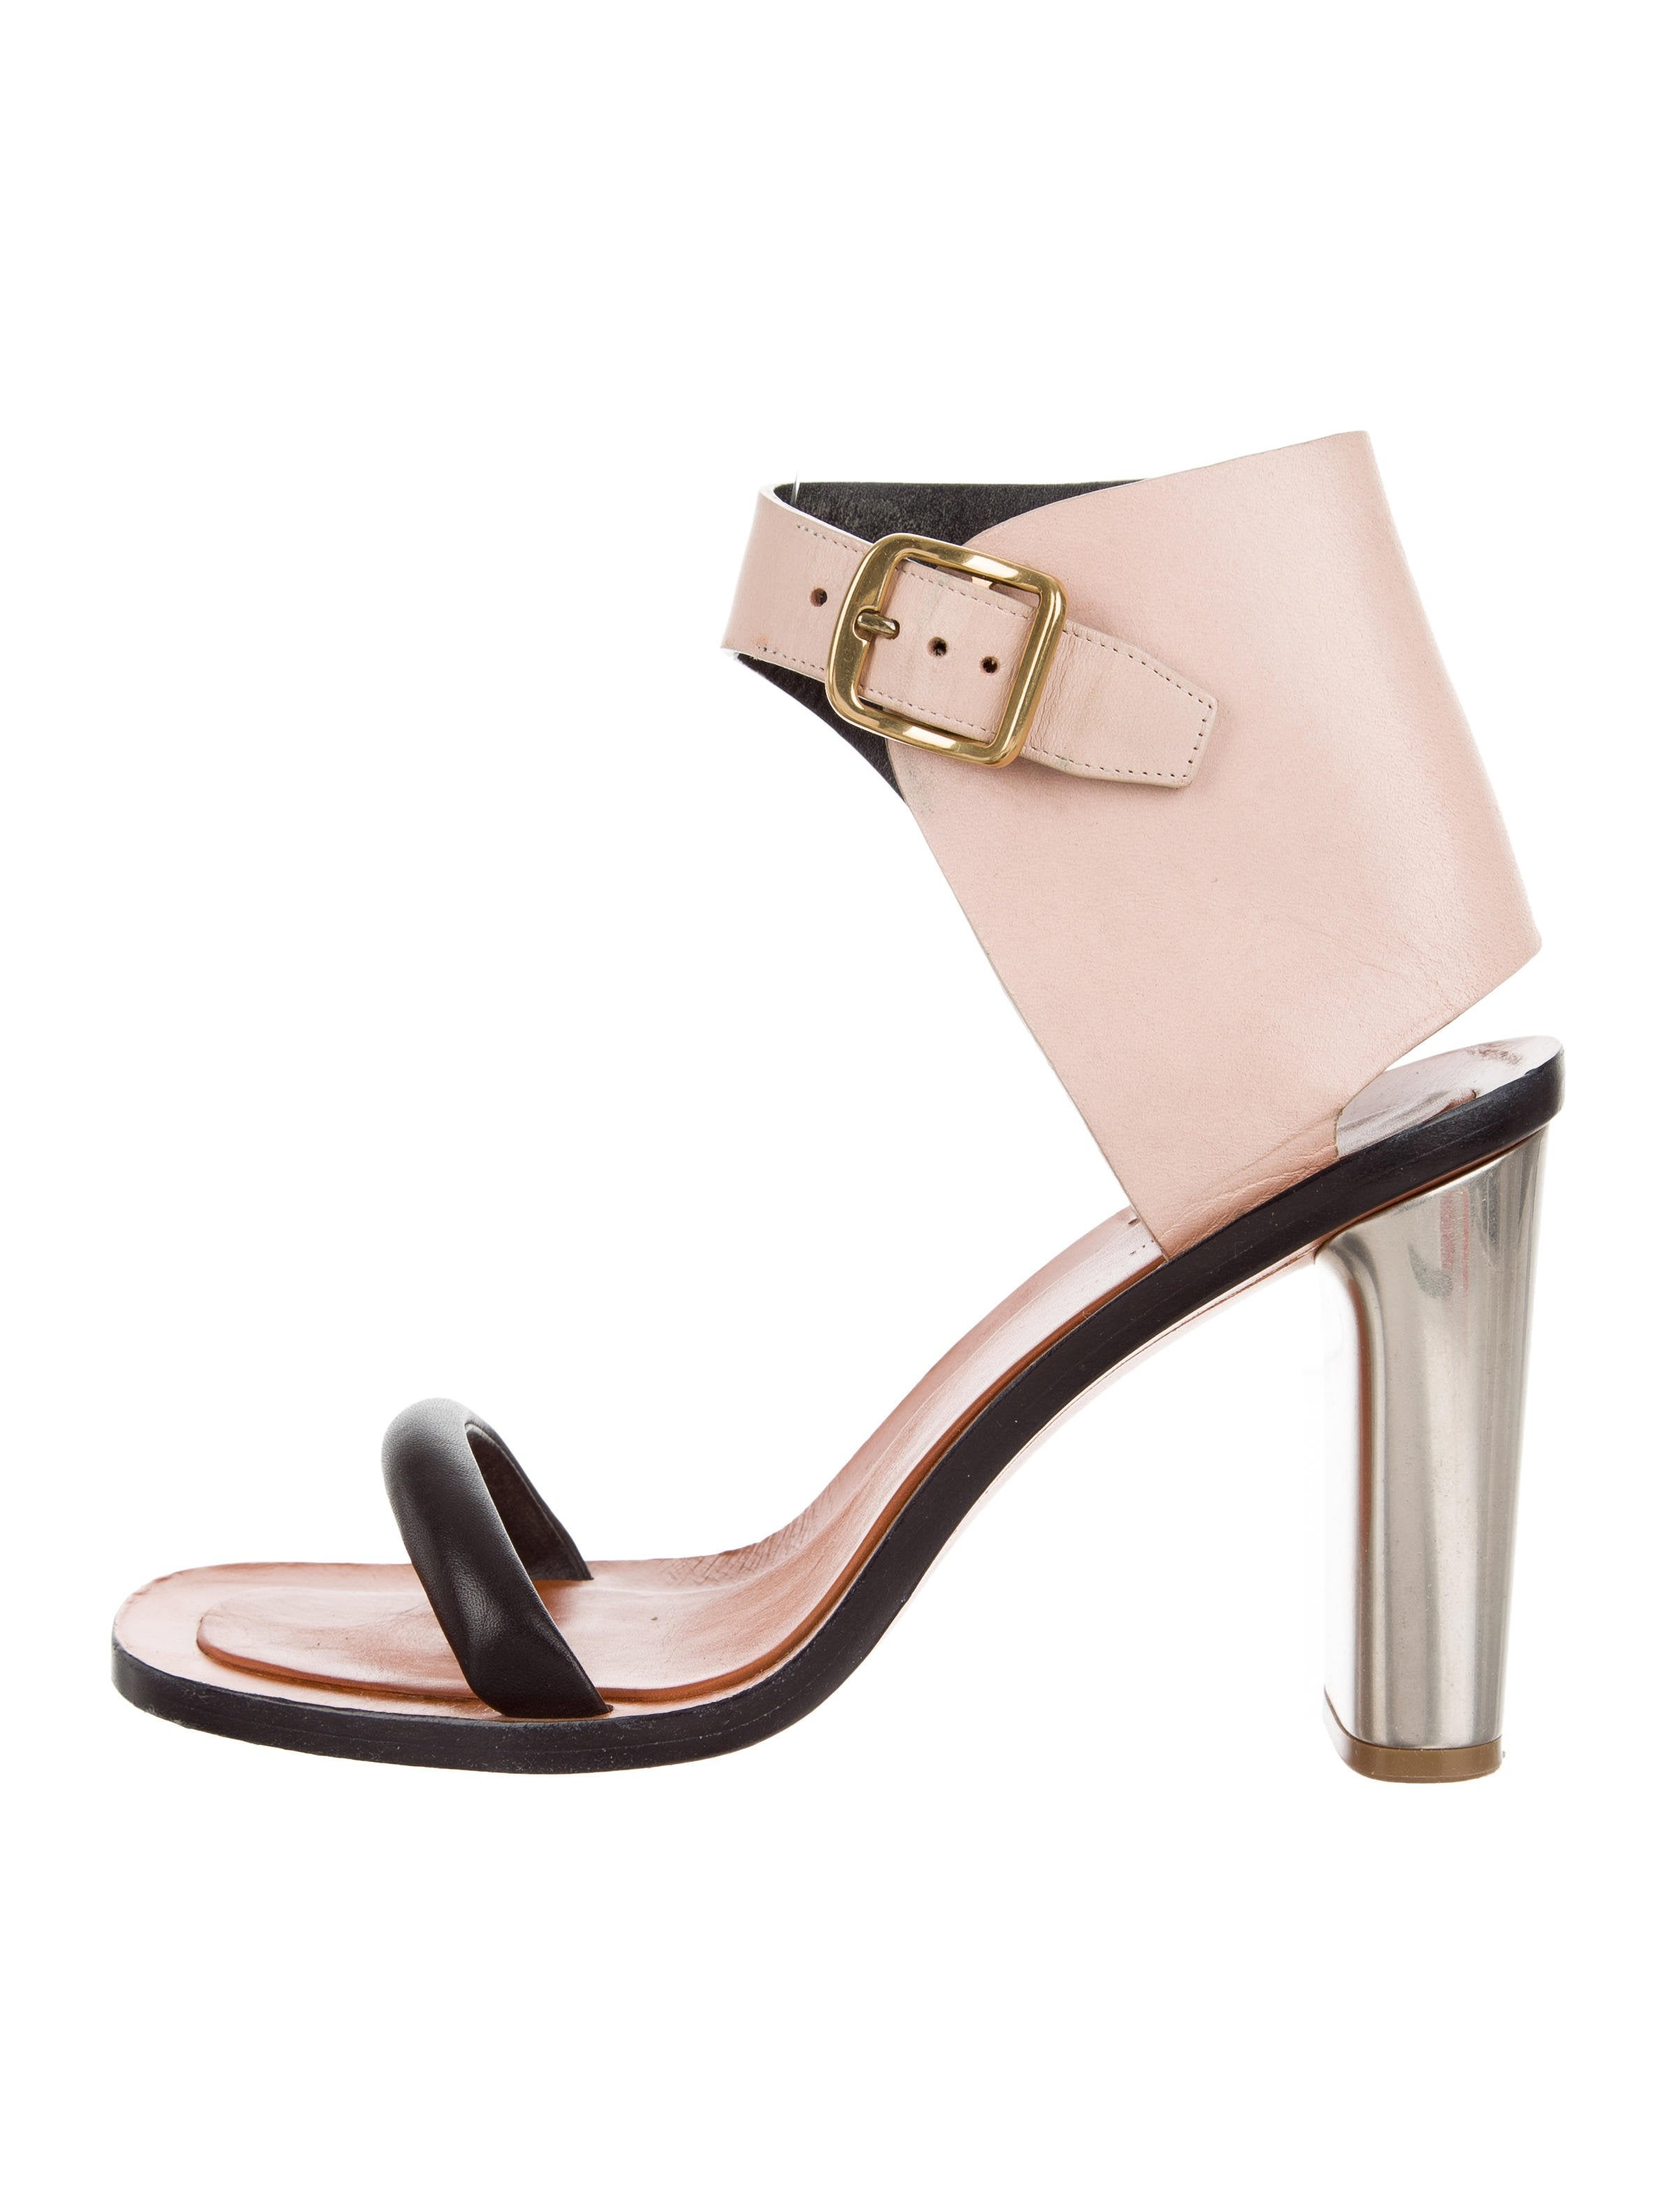 cheap sale high quality Céline Leather Colorblock Sandals free shipping browse clearance 2015 newest online 6D5oE